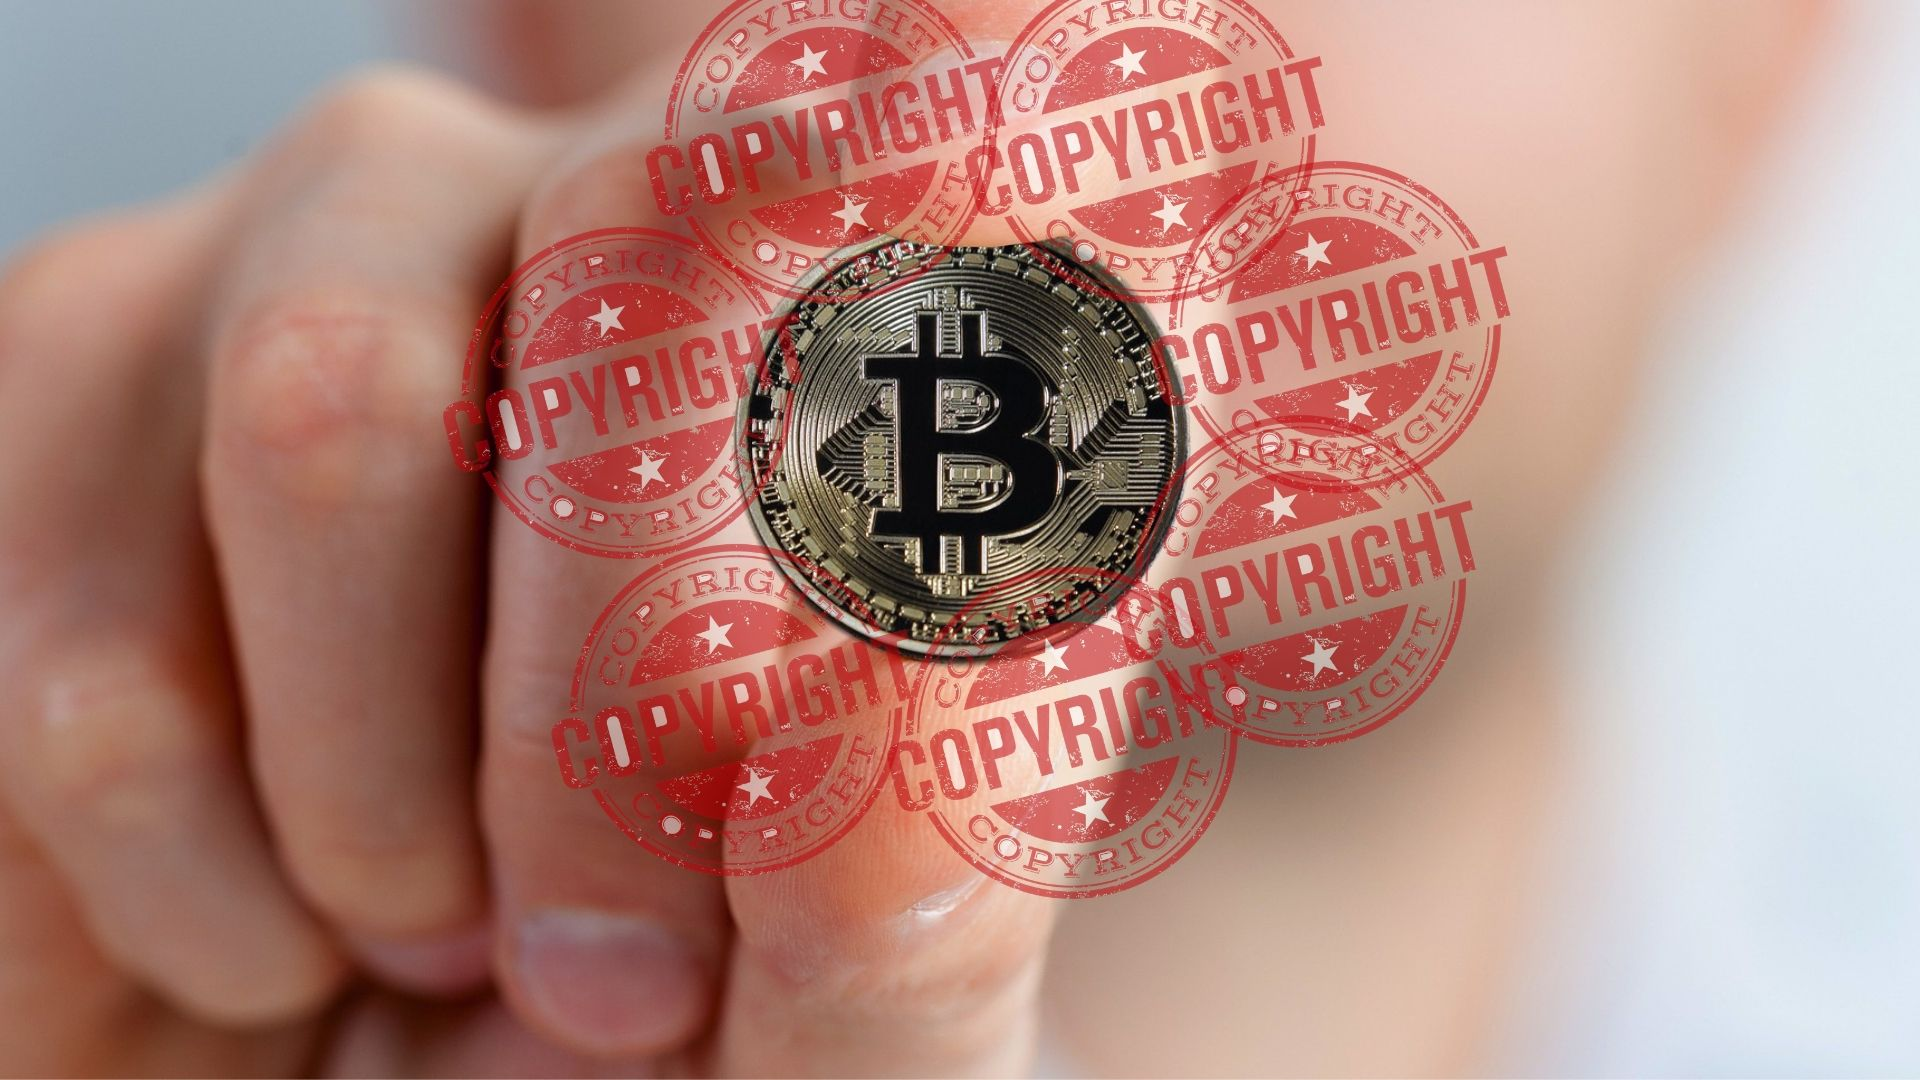 craig wright claims copyright on bitcoin